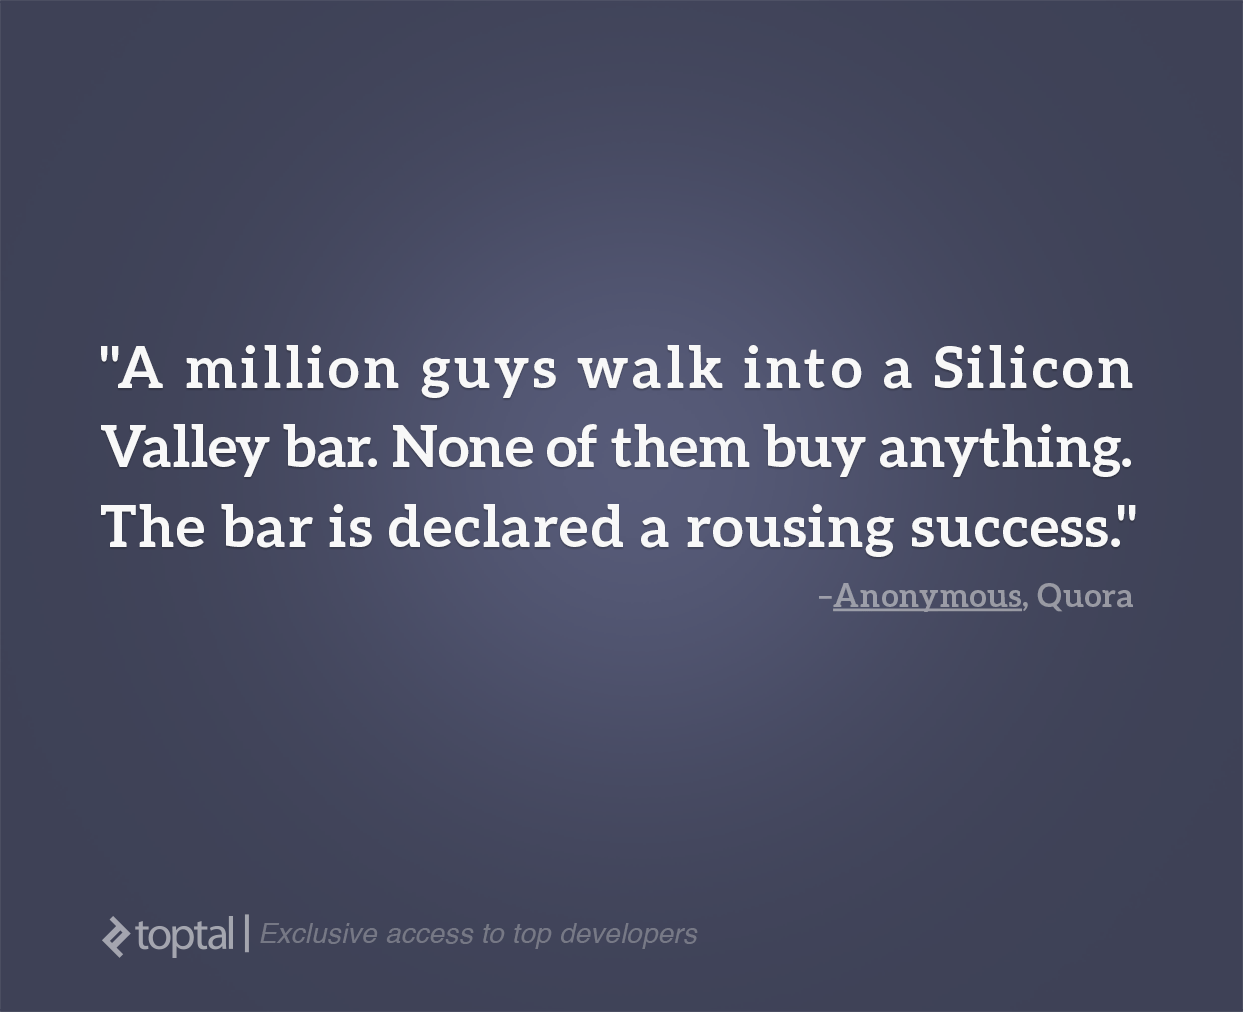 This anonymous quote about Silicon Valley highlights the importance of performing meaningful cohort analysis.